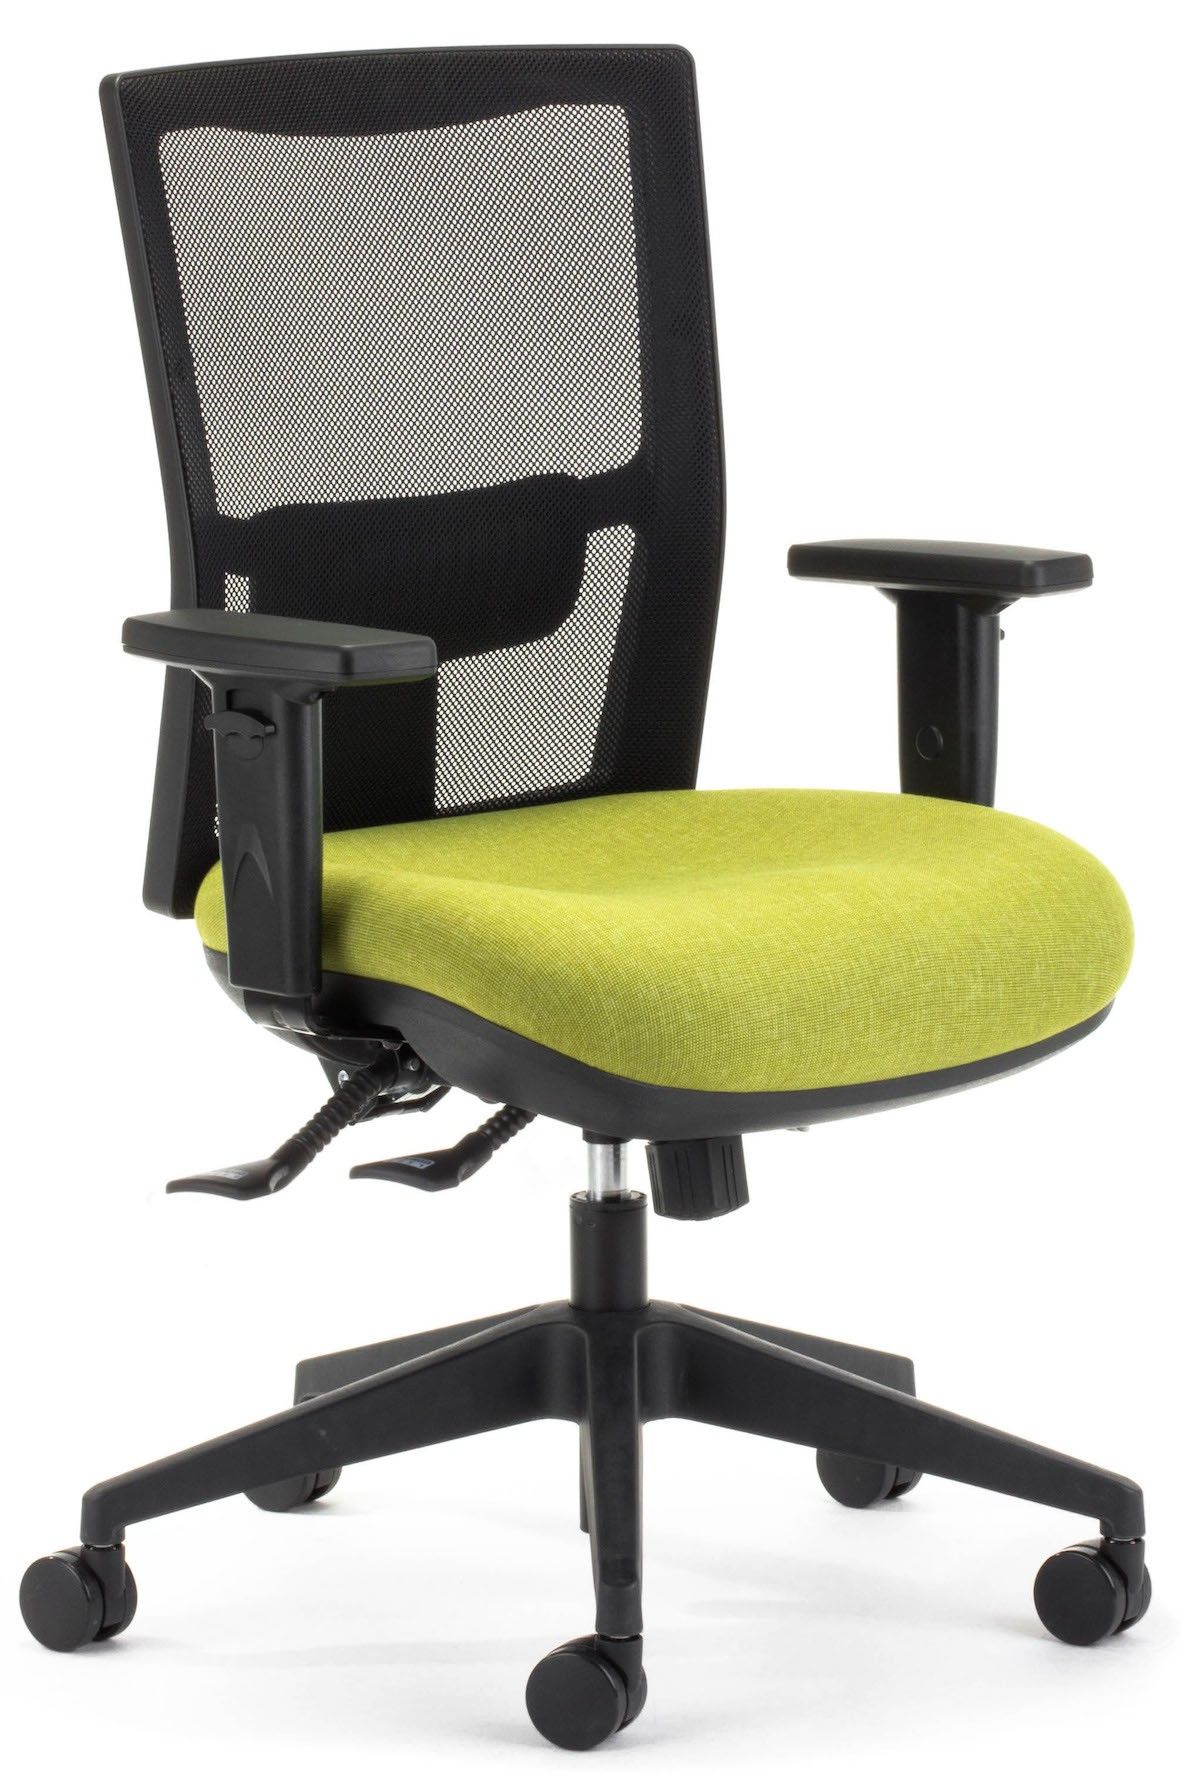 Mesh Chair, Heavy Duty Team-Air